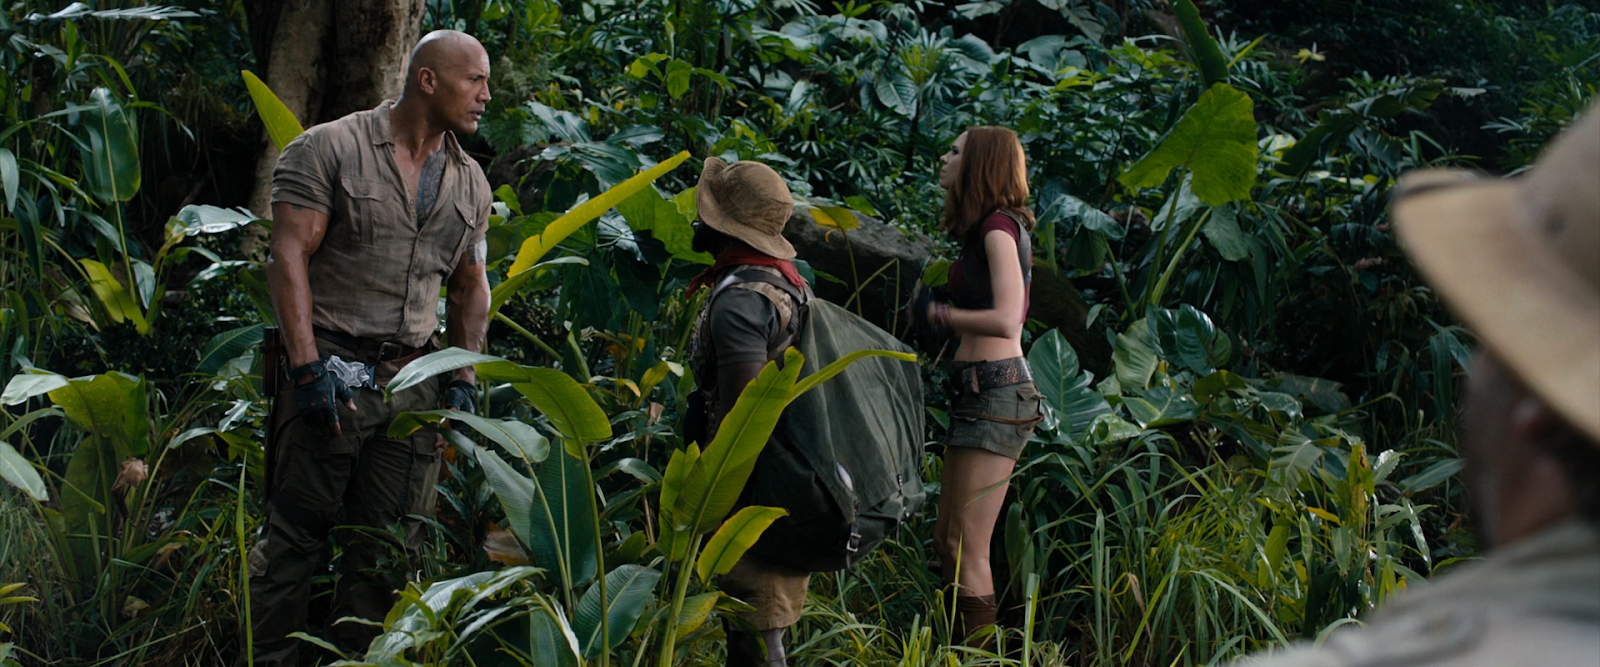 Jumanji: En la selva (2017) BRRip 1080p Latino-Ingles captura 2